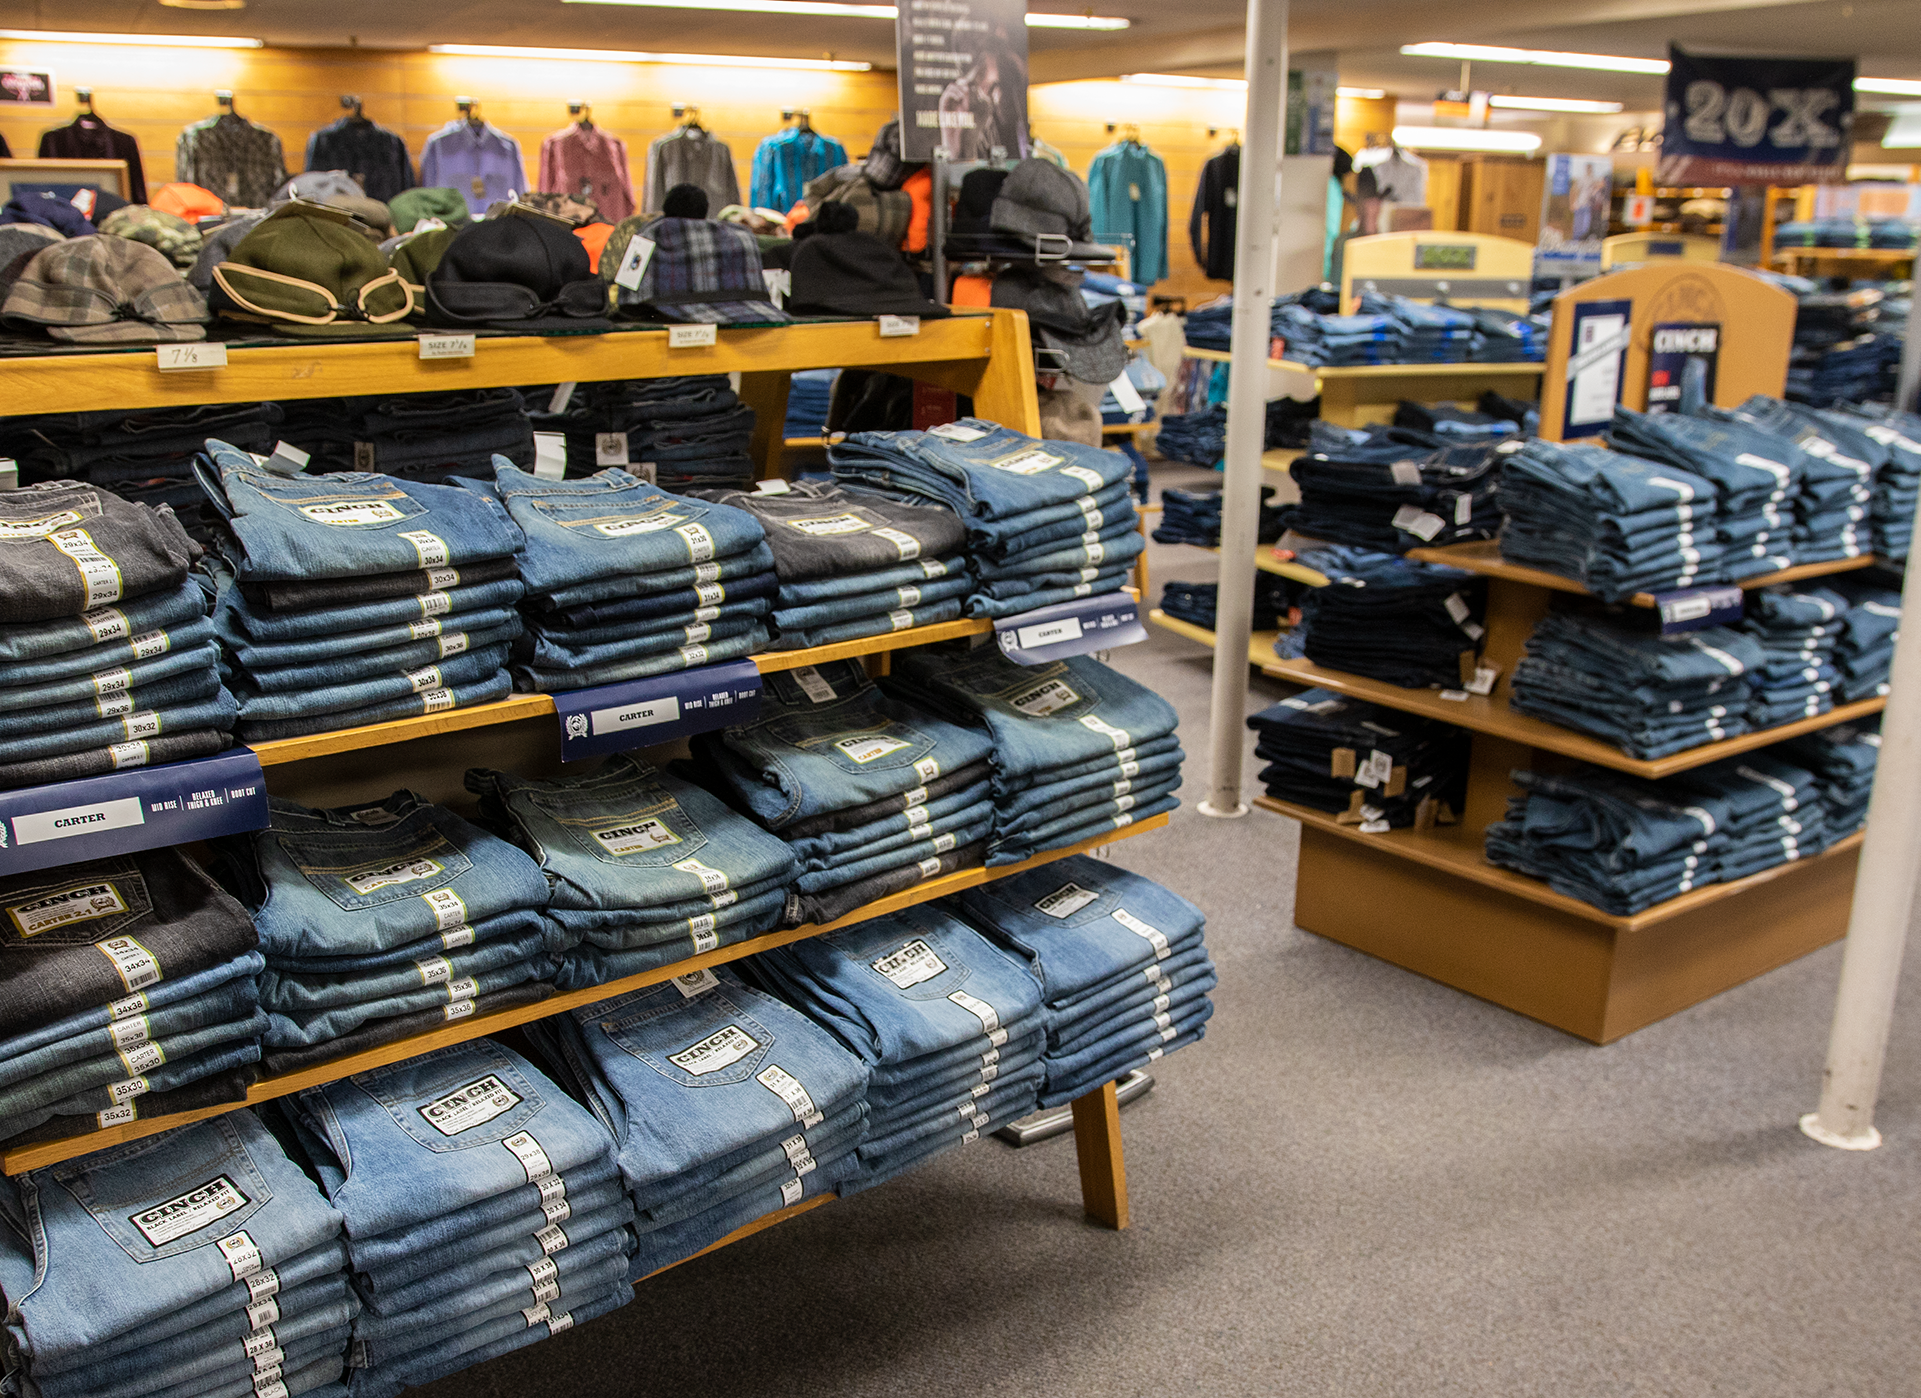 """Lou's Bottom Half"" - Workwear and denim from classic brands like Wrangler, Levi, Cinch, and Lee."